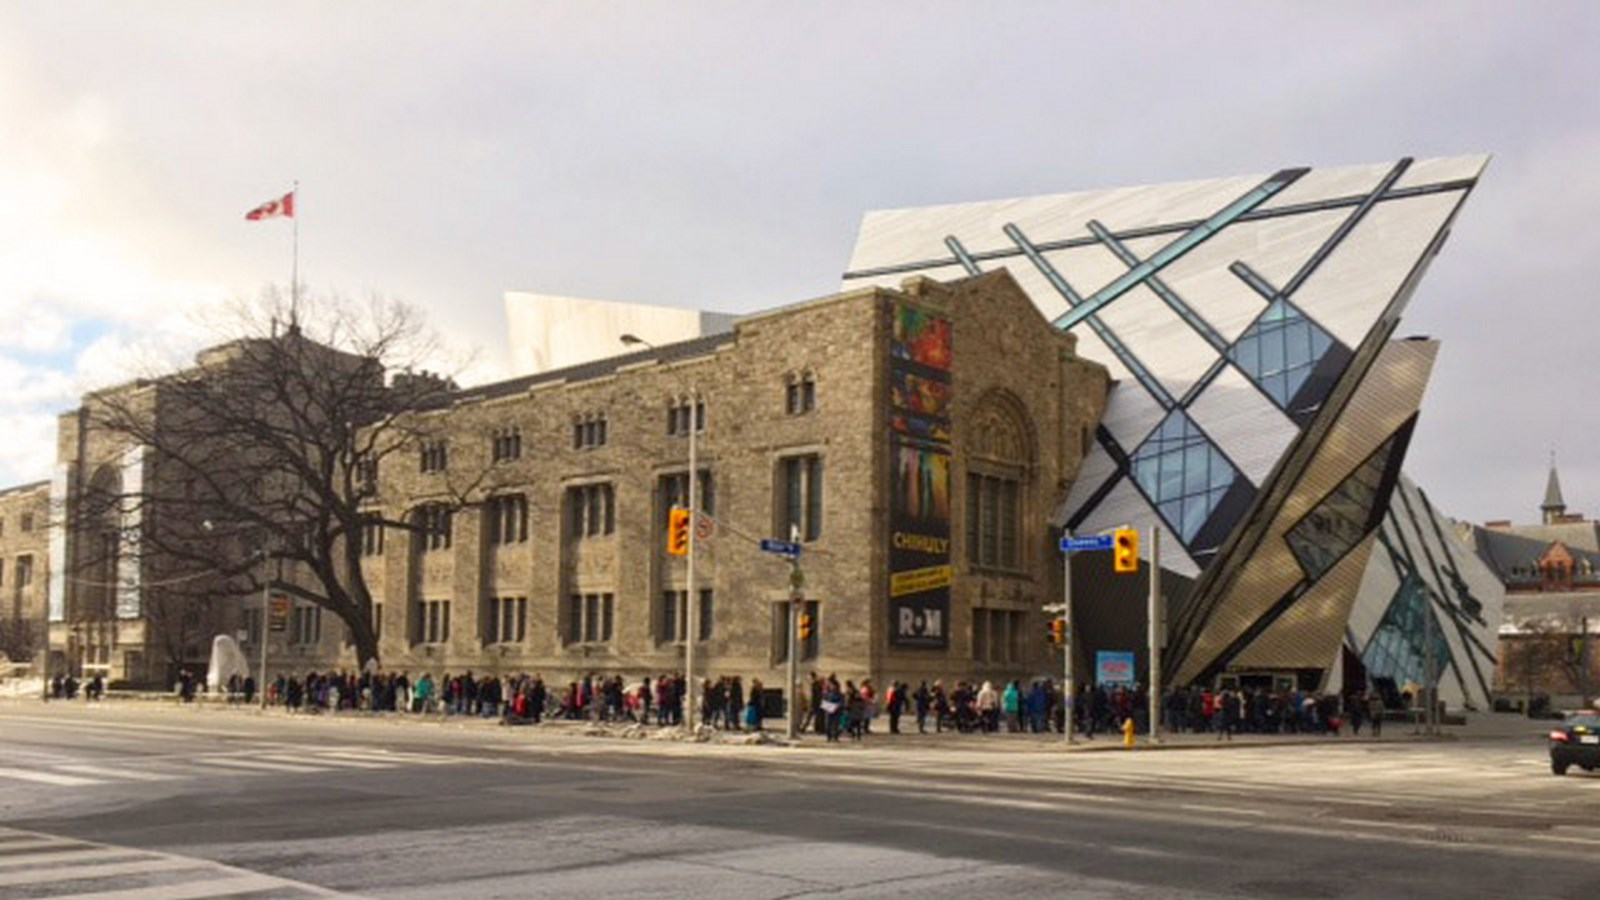 15 Iconic Projects by Daniel Libeskind Every Architect must visit! - Ontario museum-Crystal